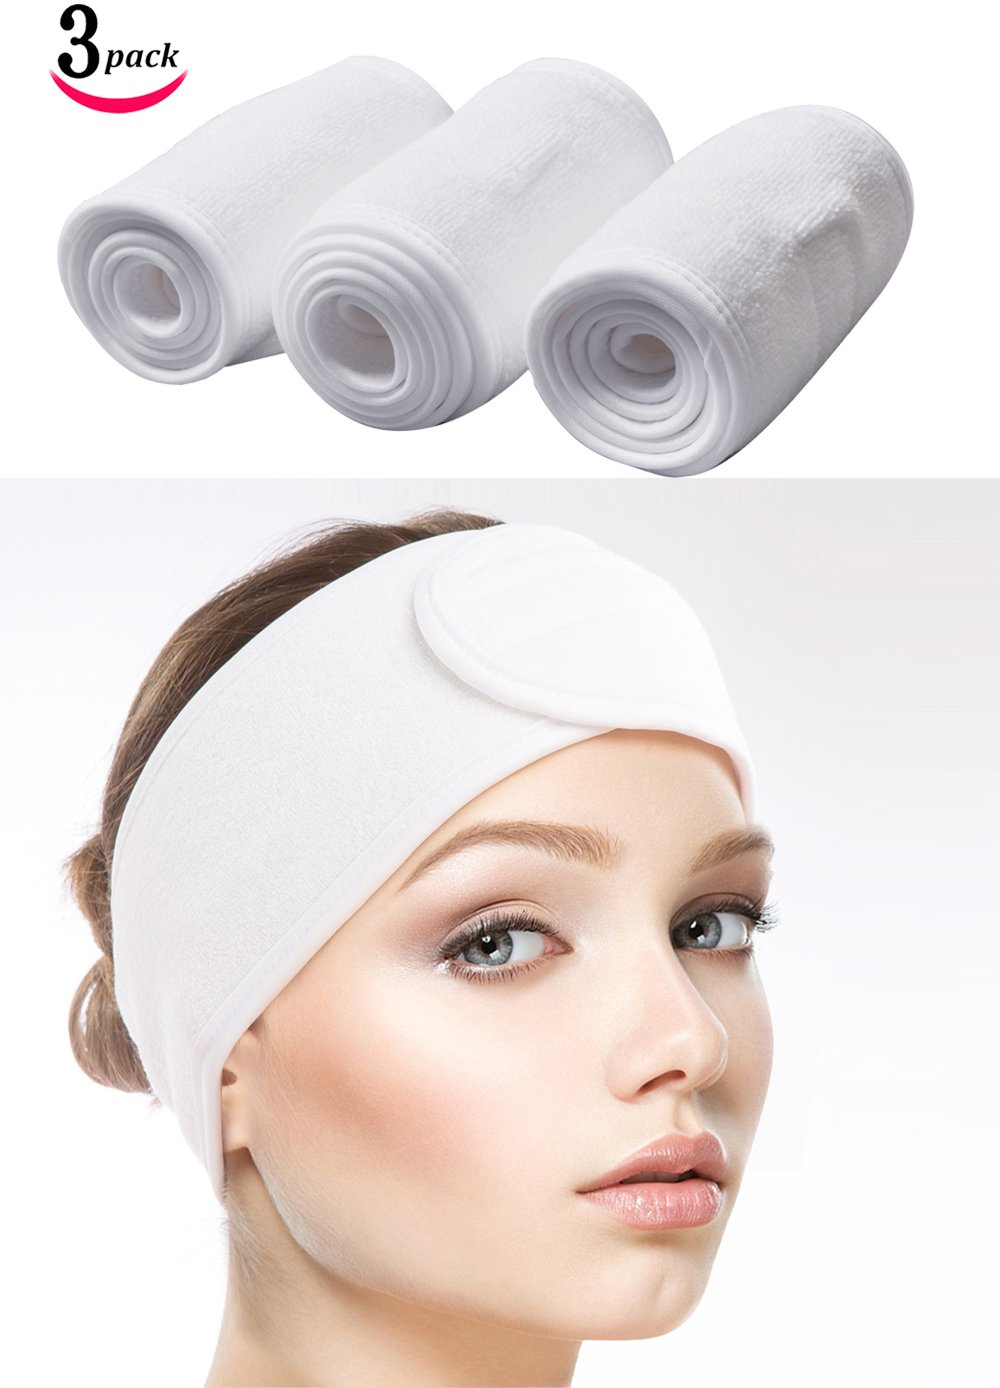 Sinland Facial Spa Headband For Washing Makeup Cosmetic Shower Soft Women Hair Band With Velcro Design Pack of 3